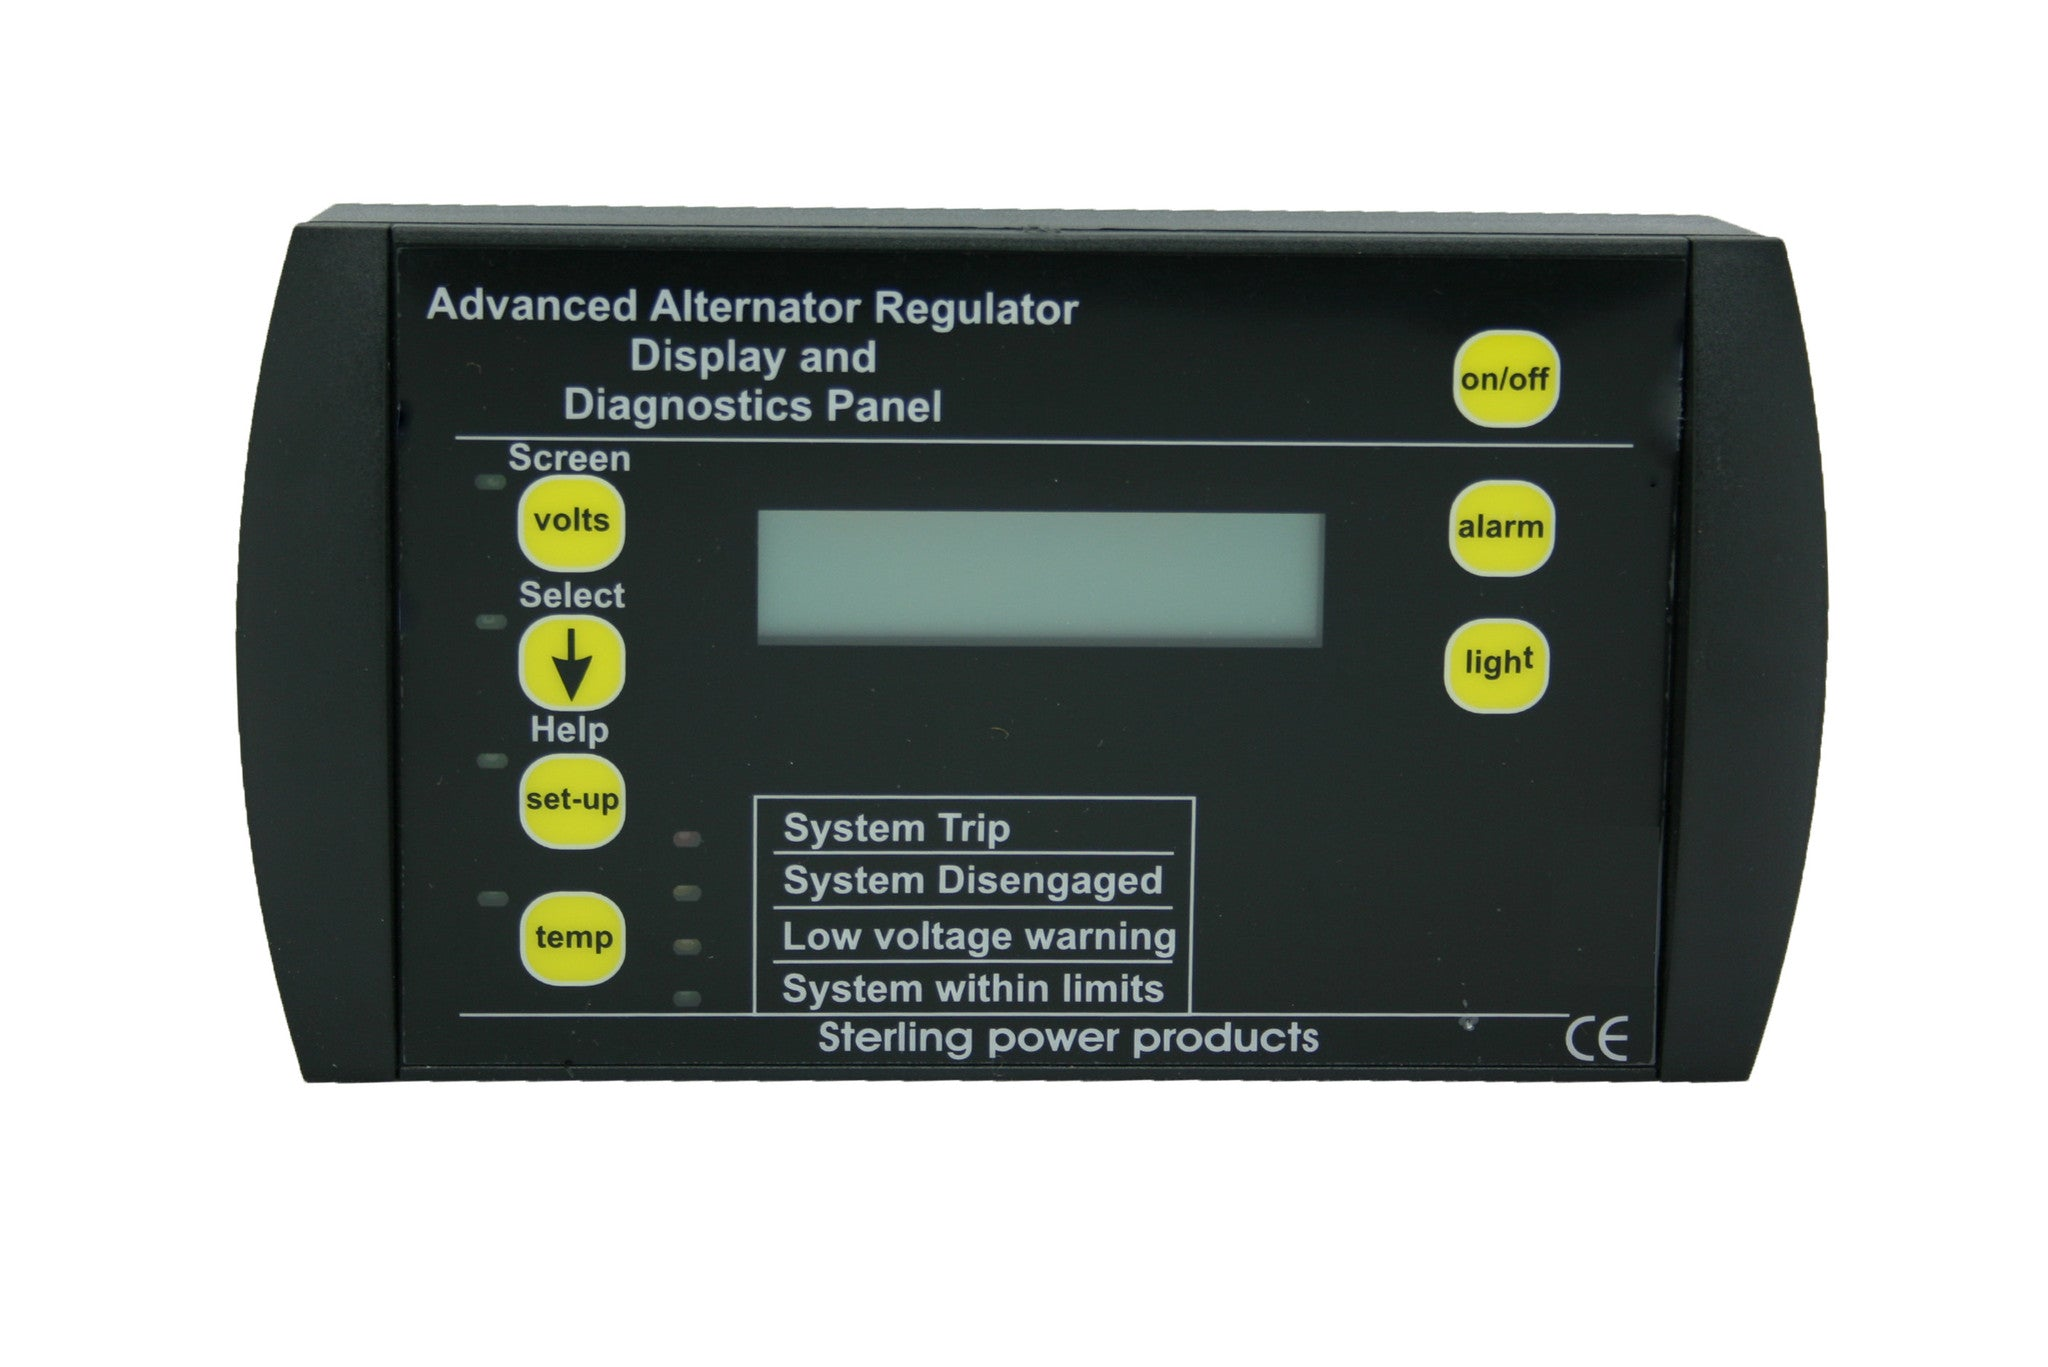 Advanced Digital Alternator Regulator Pro Reg D Dw Pdar Pdarw Circuit Diagram Of Remote Control Tester Only